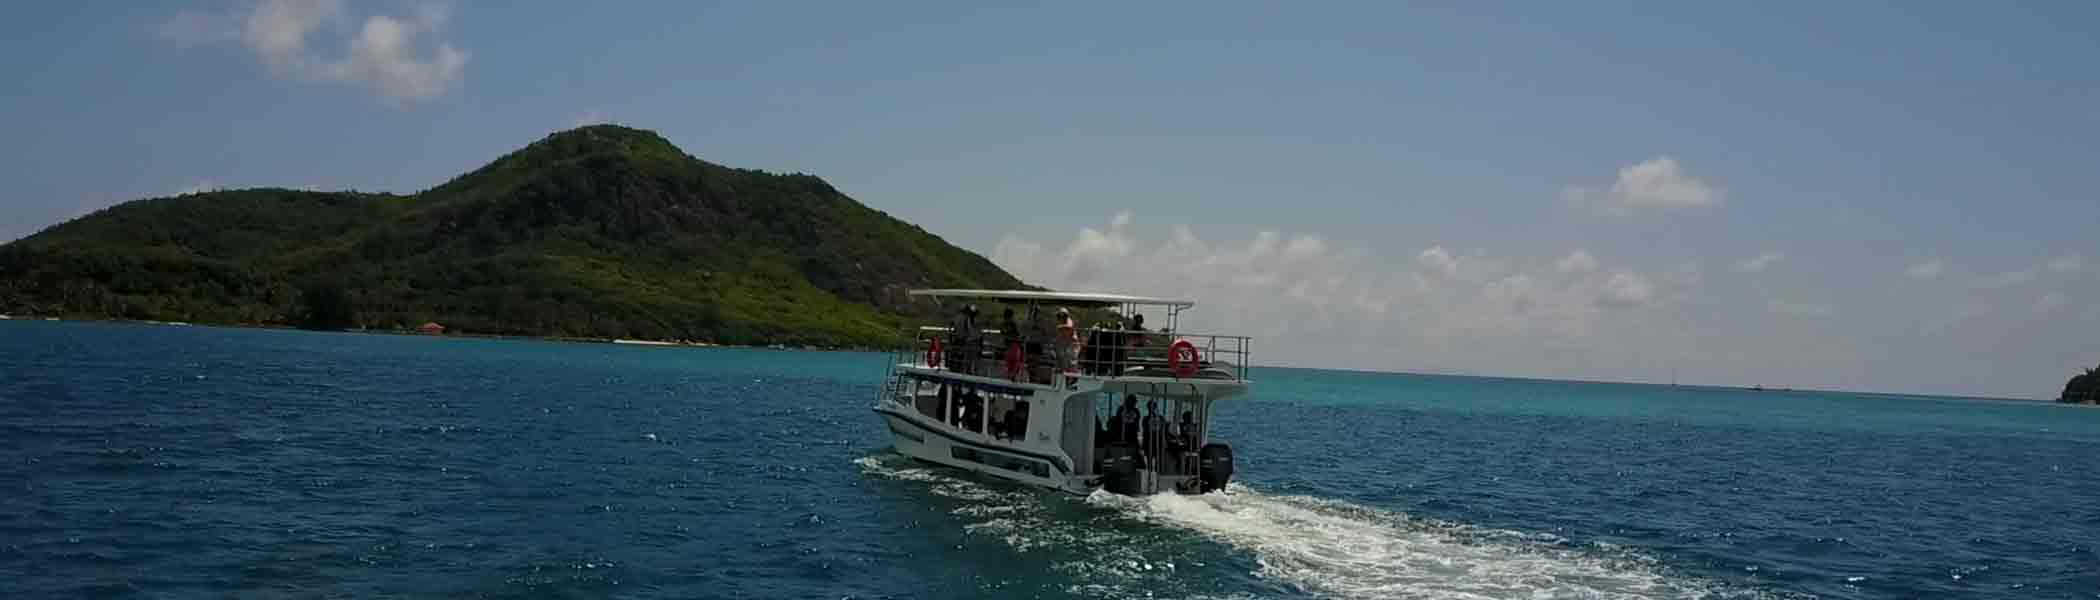 teddys-glass-bottom-boat, Boat Charters in Seychelles Islands